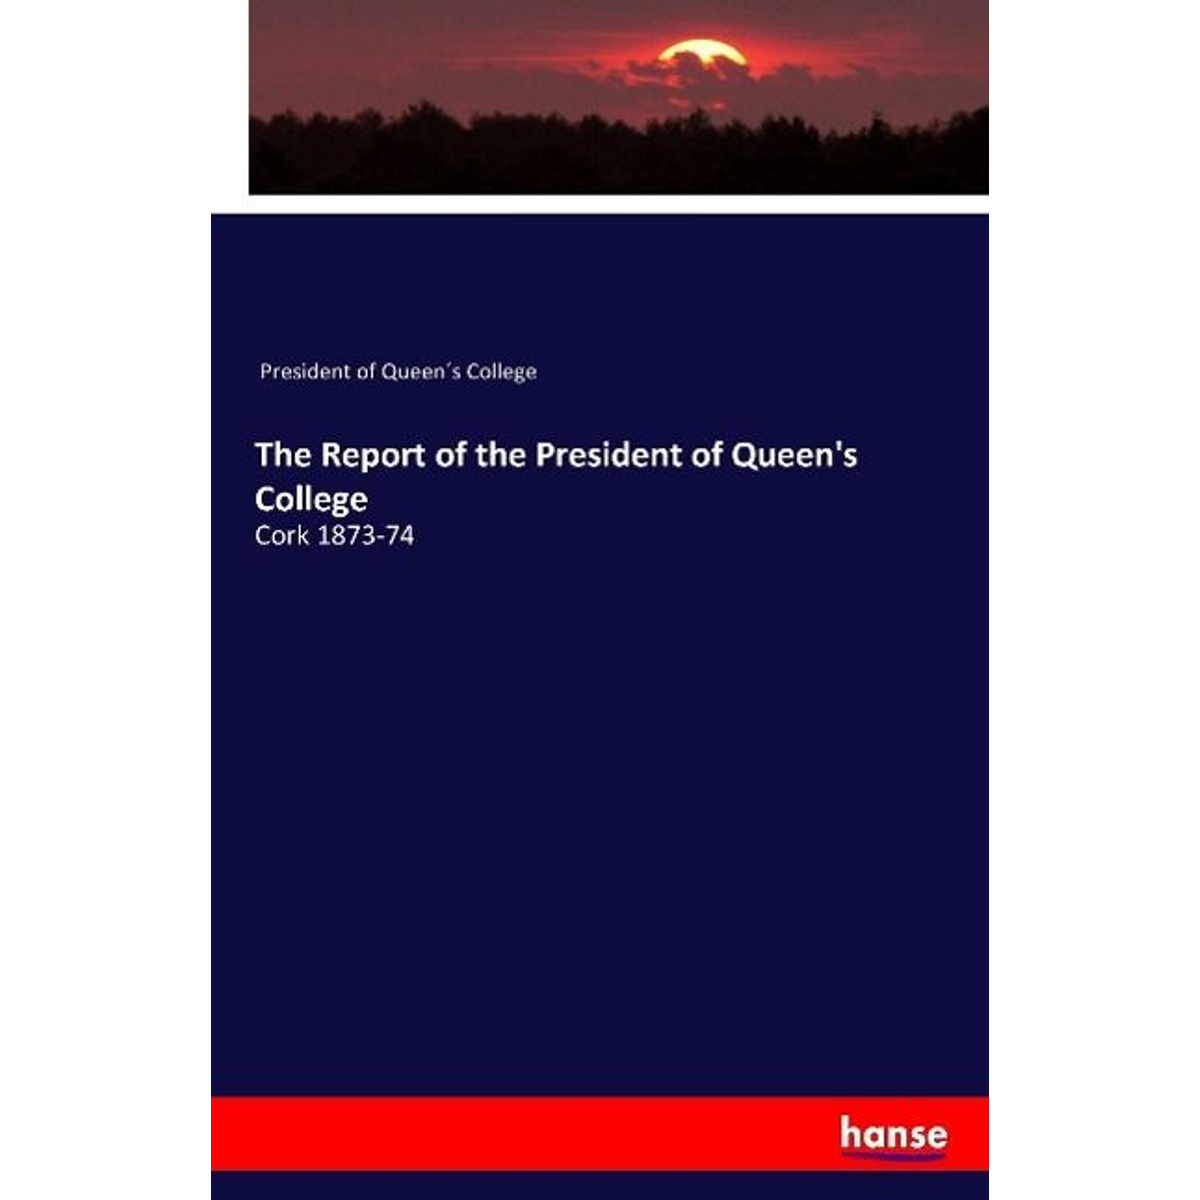 The Report of the President of Queen's College